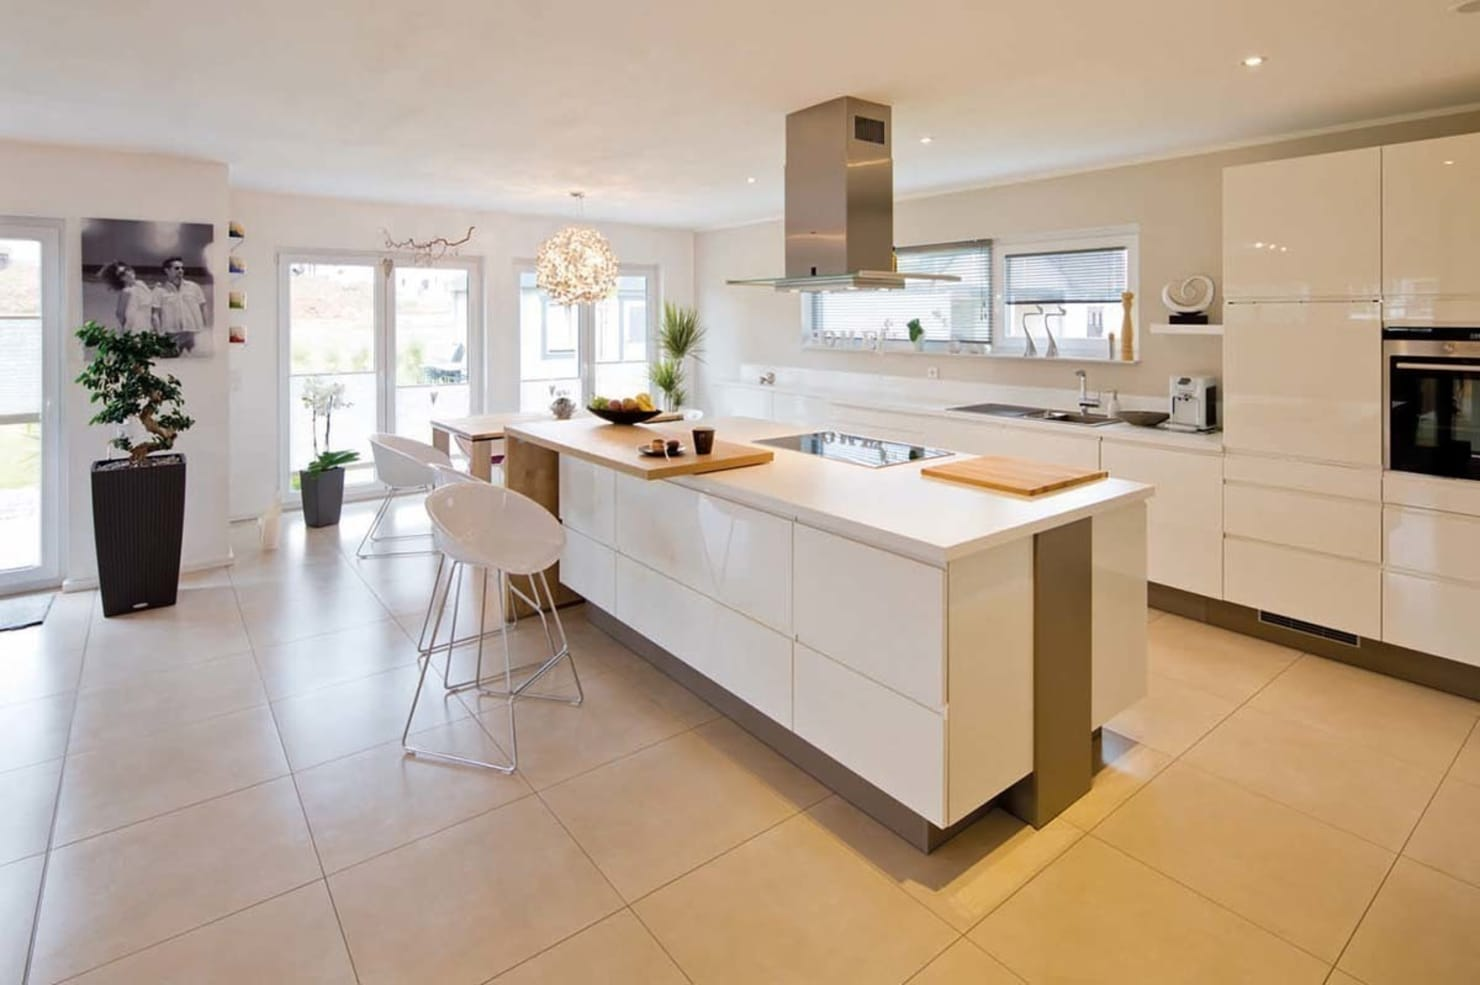 Stylish ways to separate your kitchen from the living room